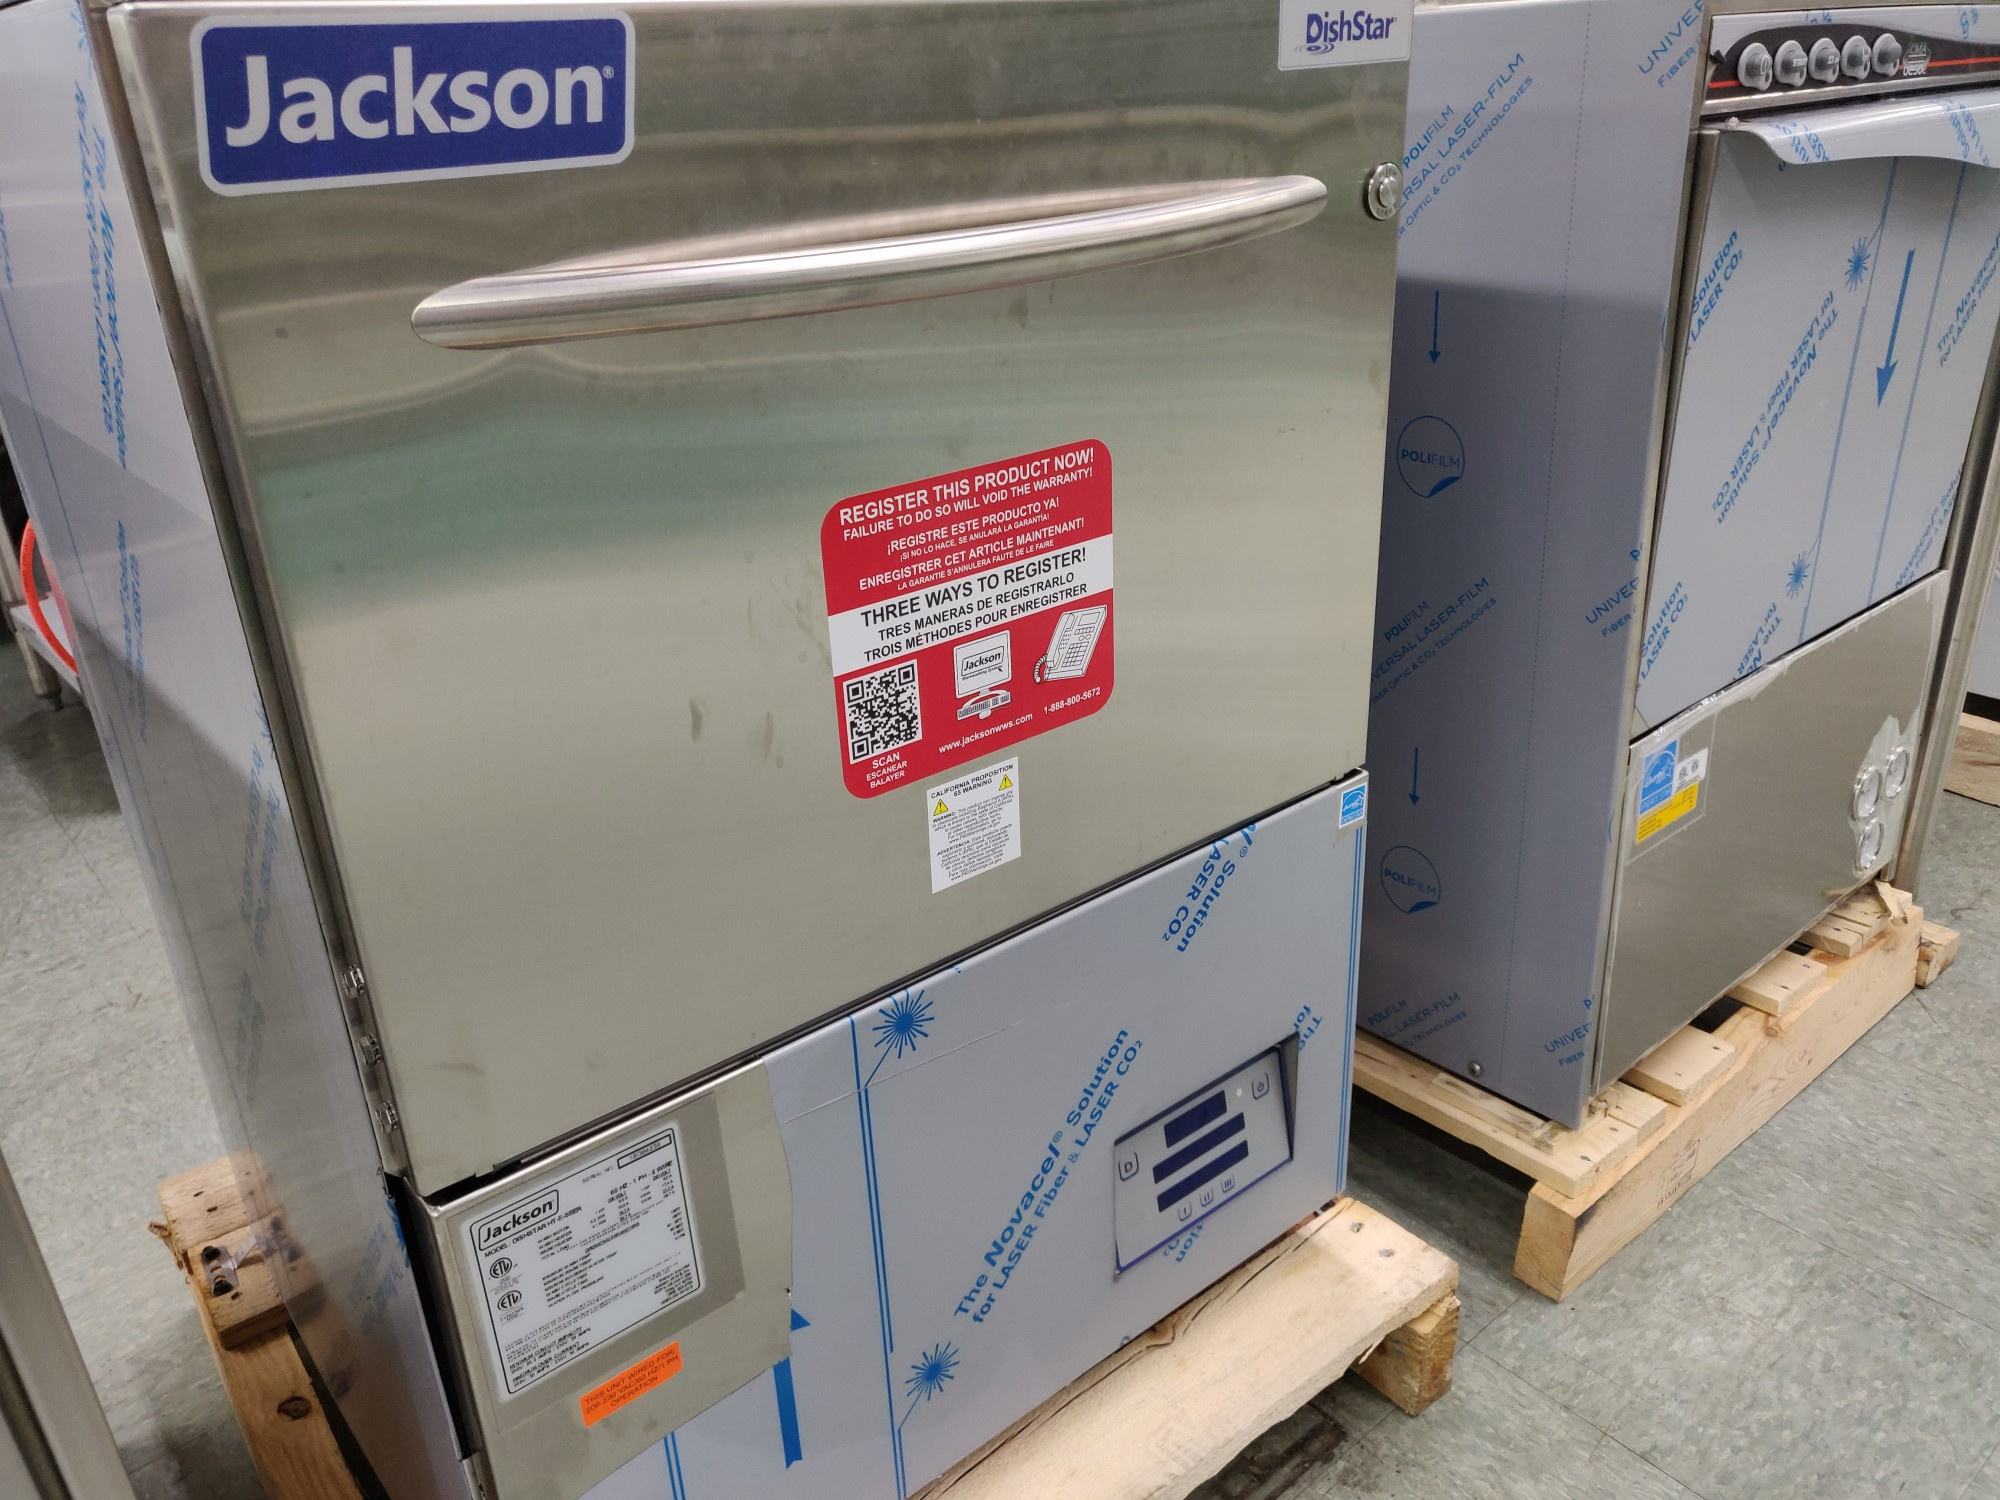 Jackson Dishwashers in MaxChef warehouse